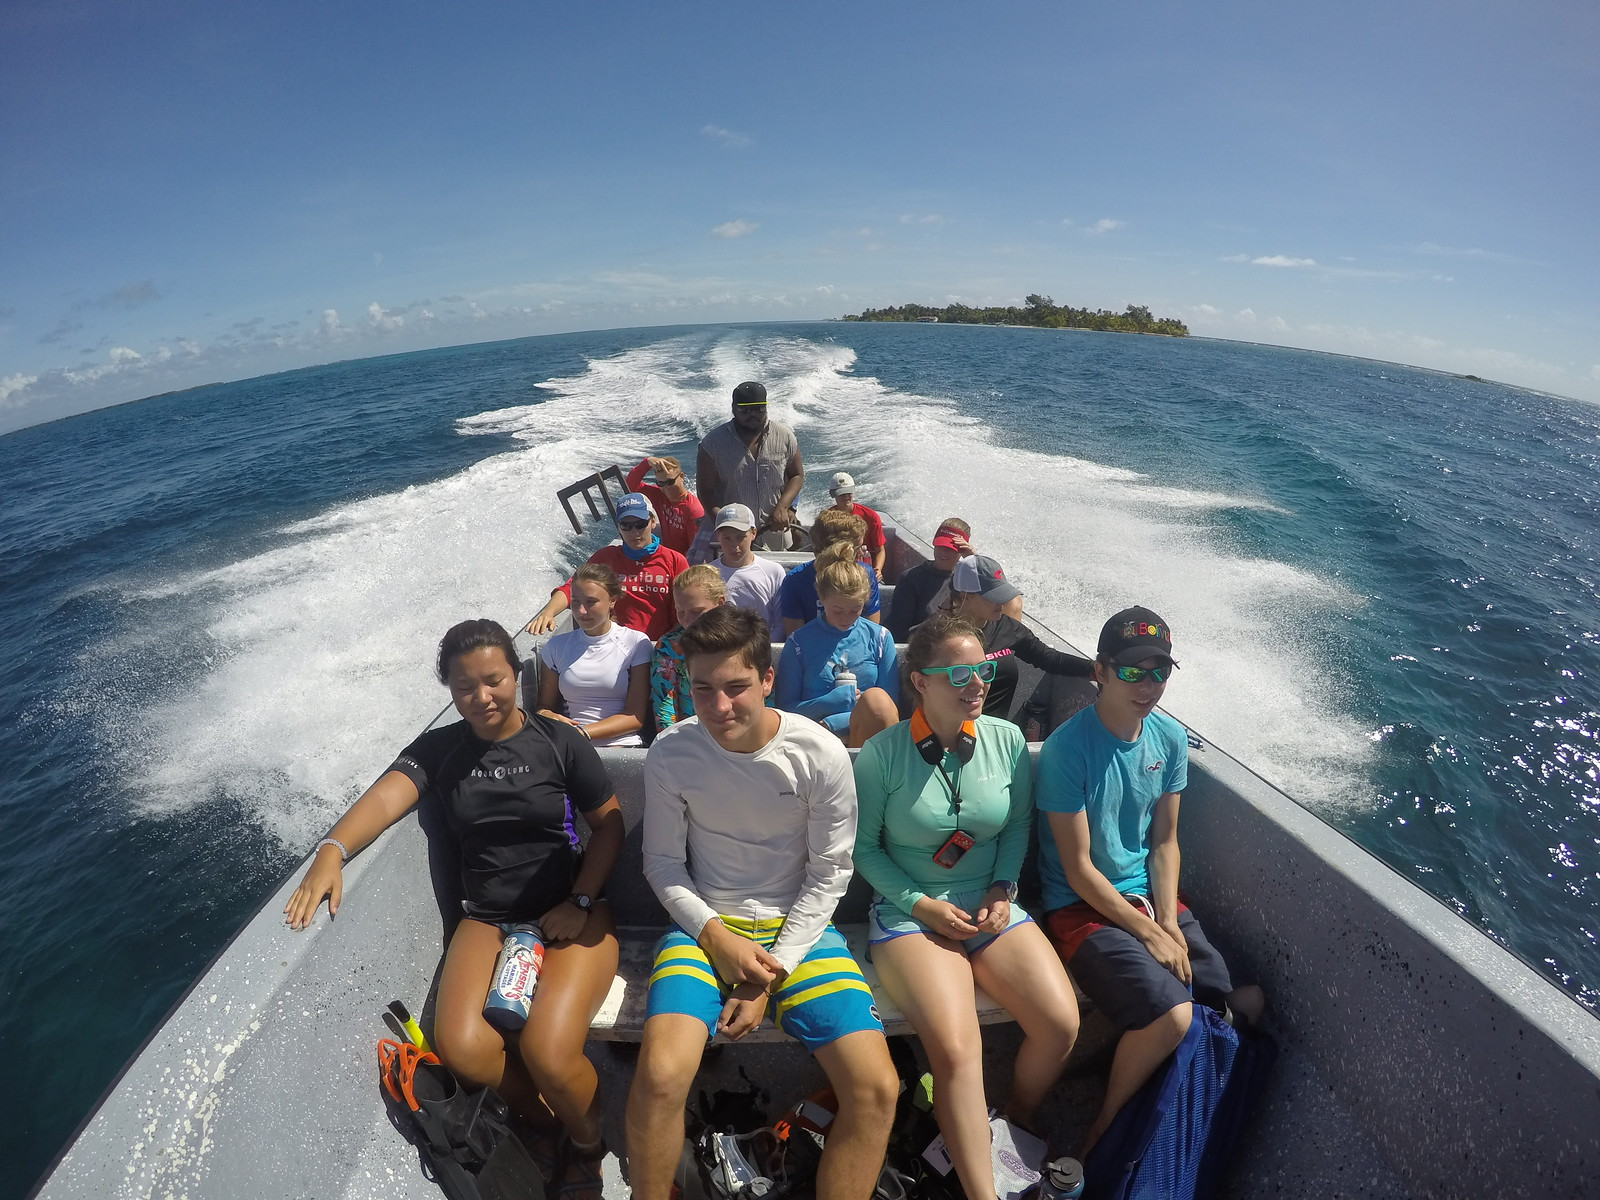 Heading out to the reef for a snorkel.